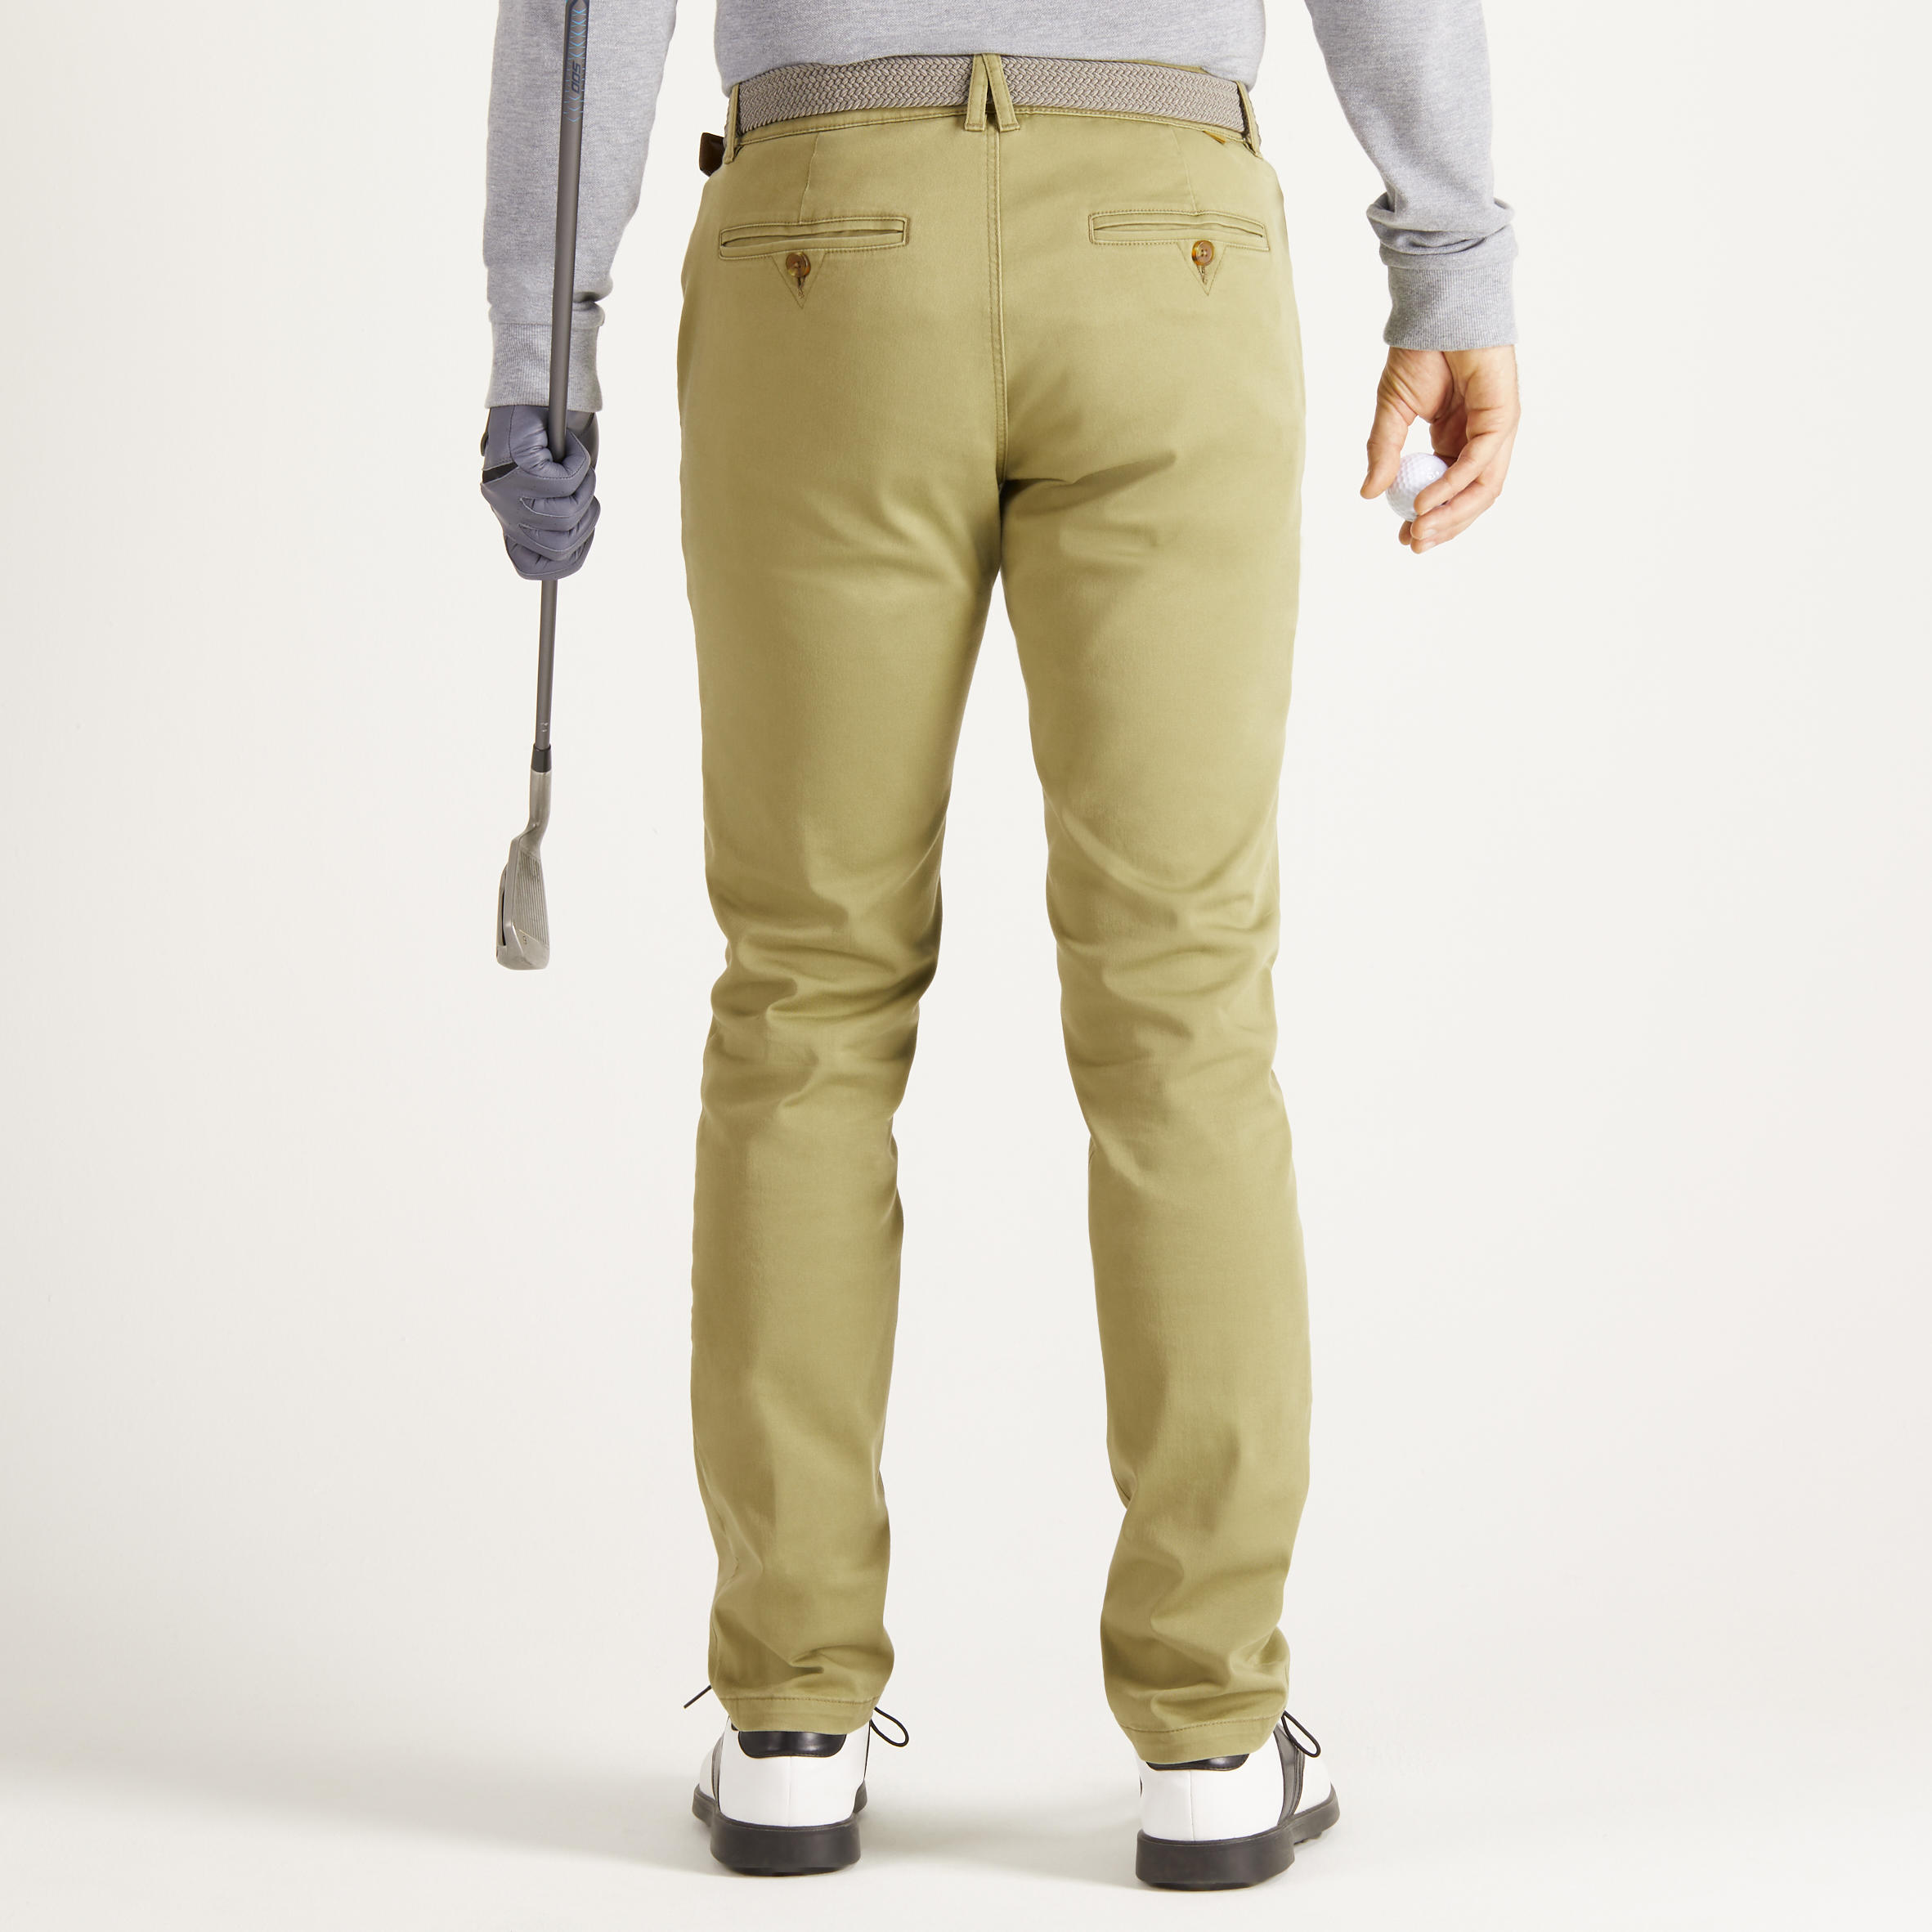 MEN'S MILD WEATHER GOLF TROUSERS KHAKI